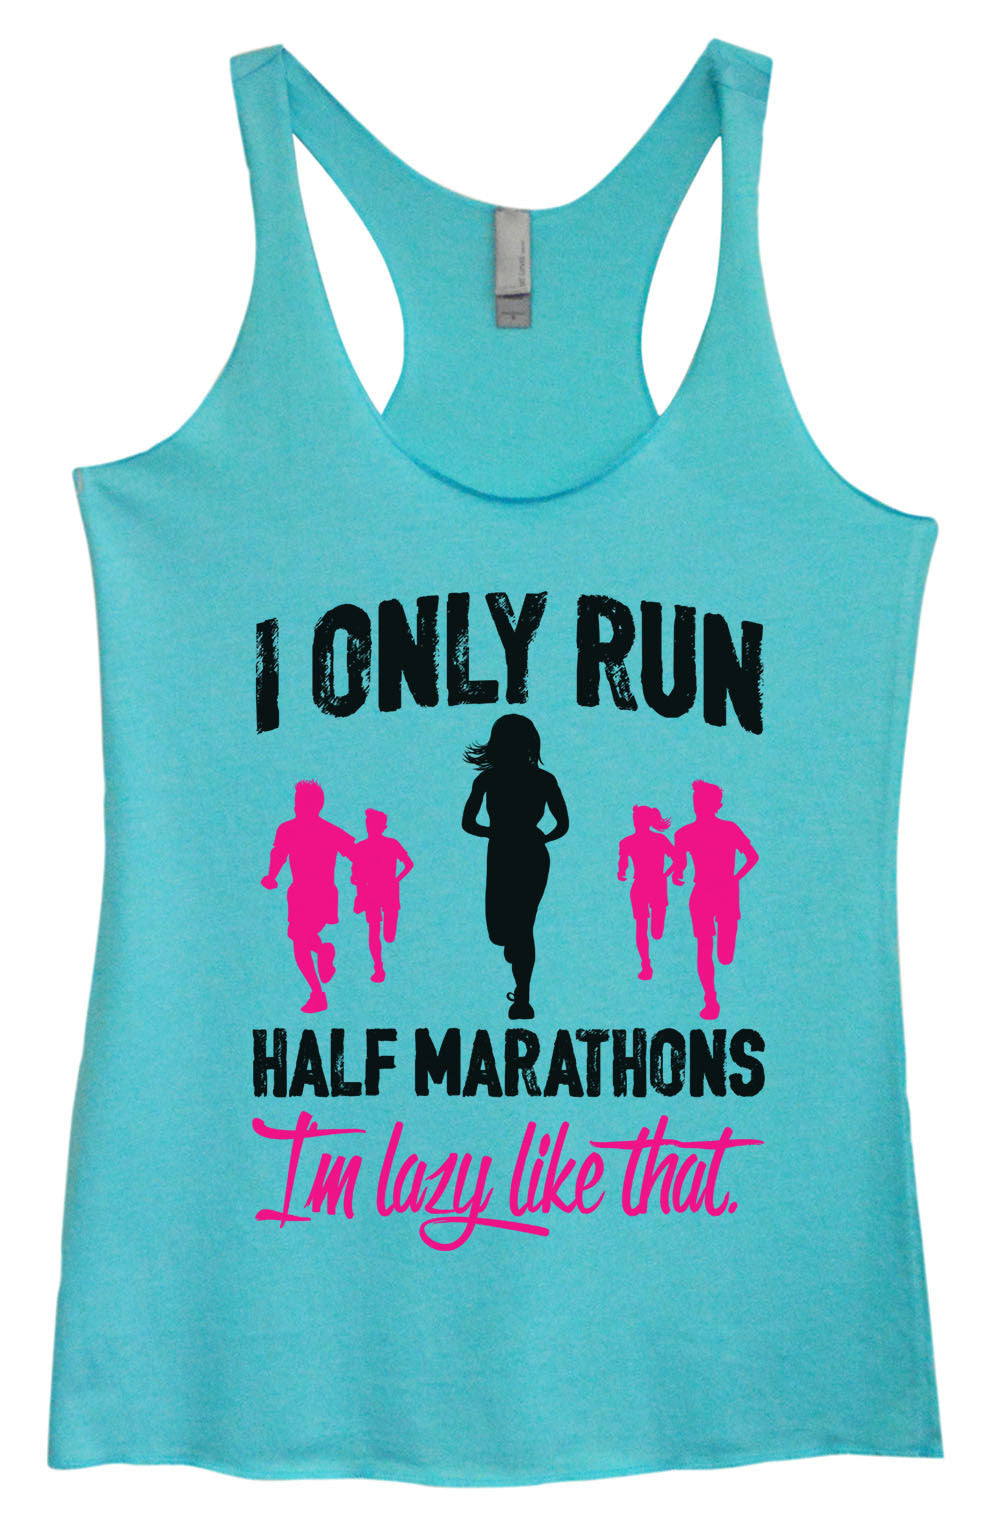 Womens Fashion Triblend Tank Top - I Only Run Half Marathons I'm Lazy Like That. - Tri-1489 - Funny Shirts Tank Tops Burnouts and Triblends  - 4